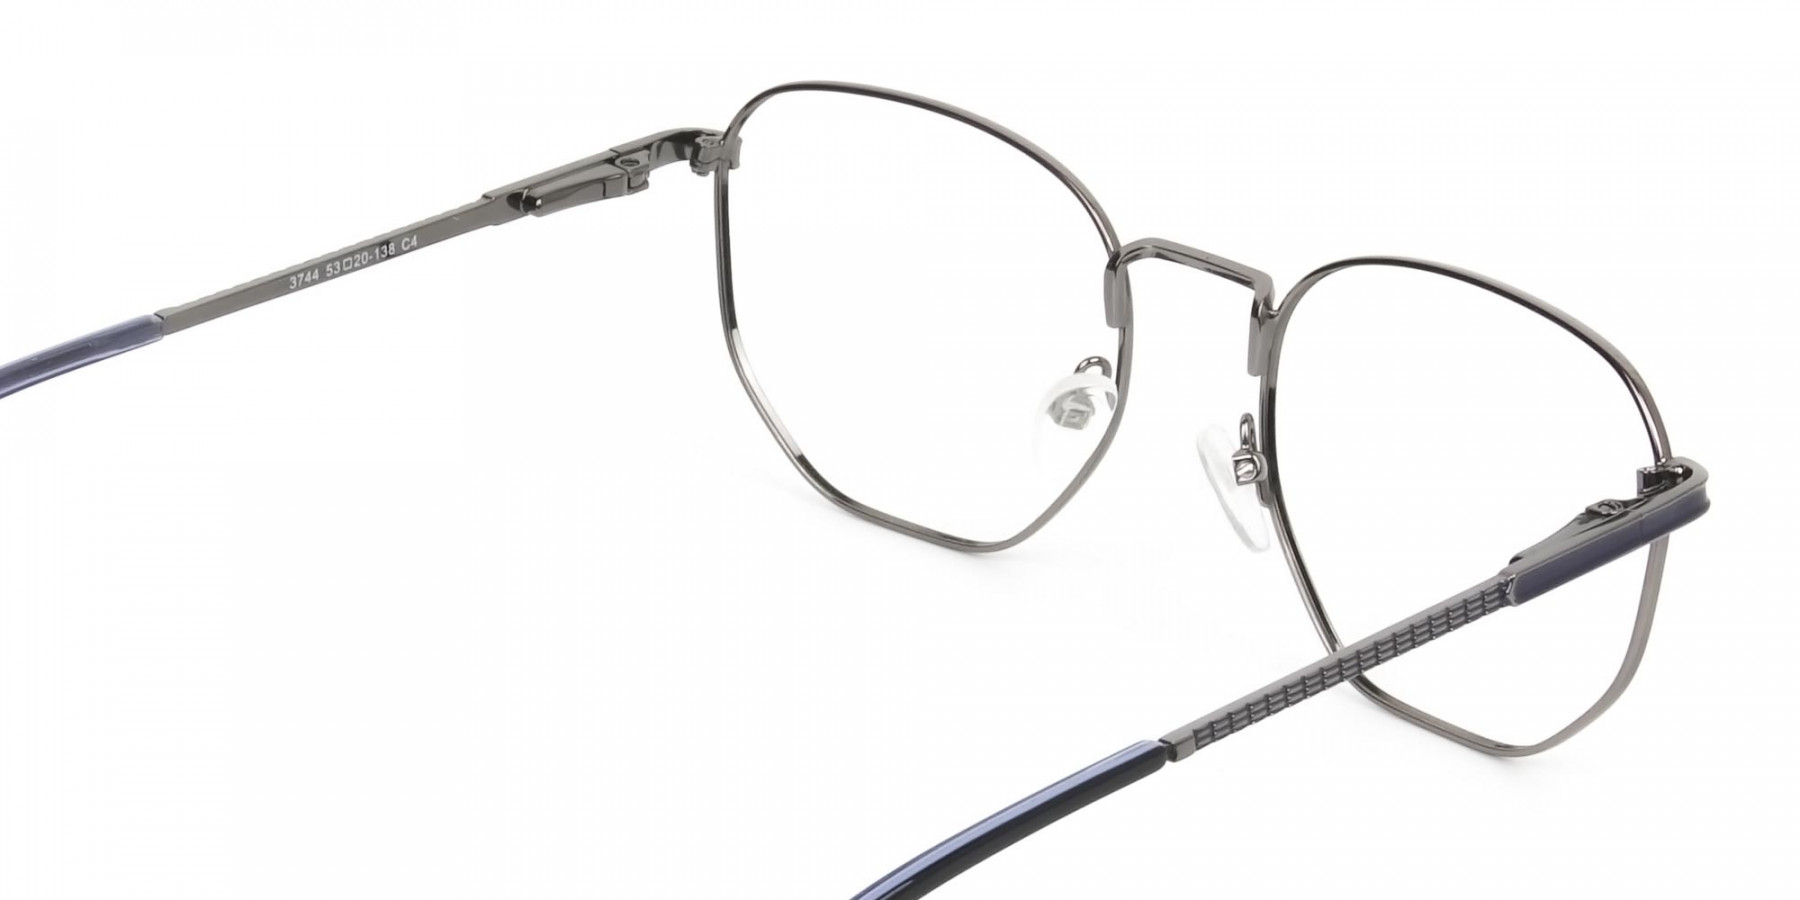 Lightweight Silver & Blue Geometric Glasses - 1